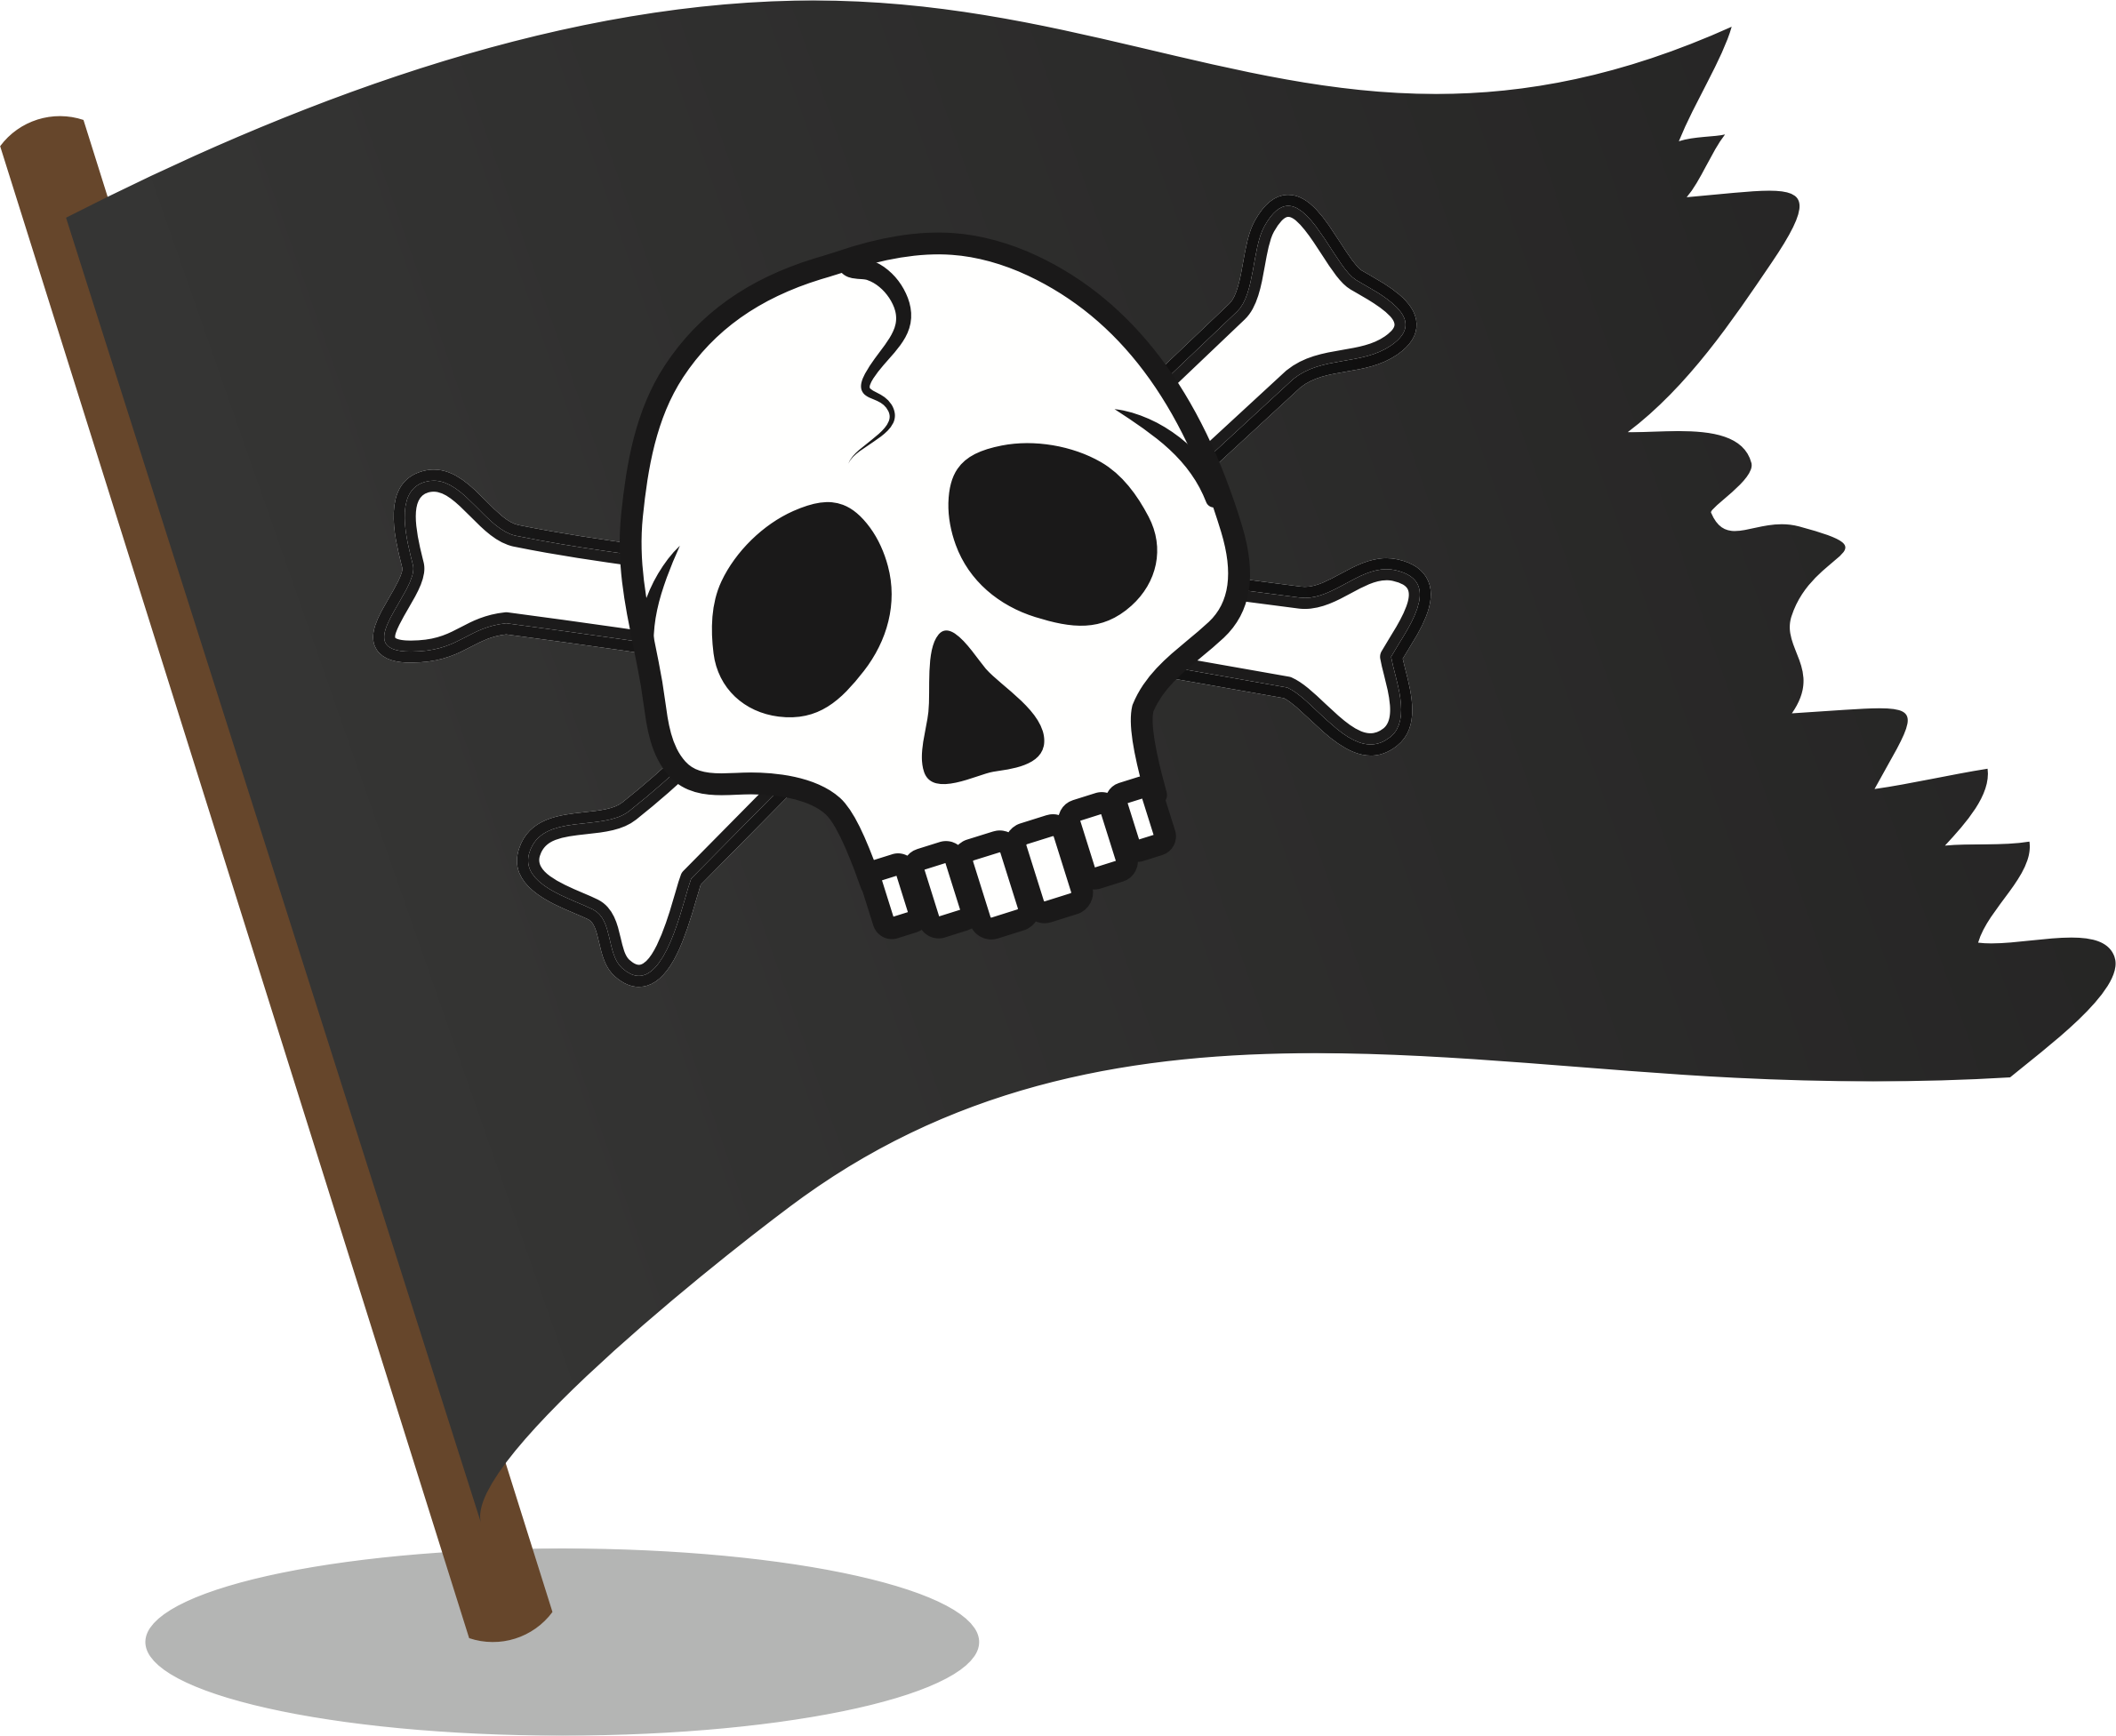 Pirate flag by oksmith